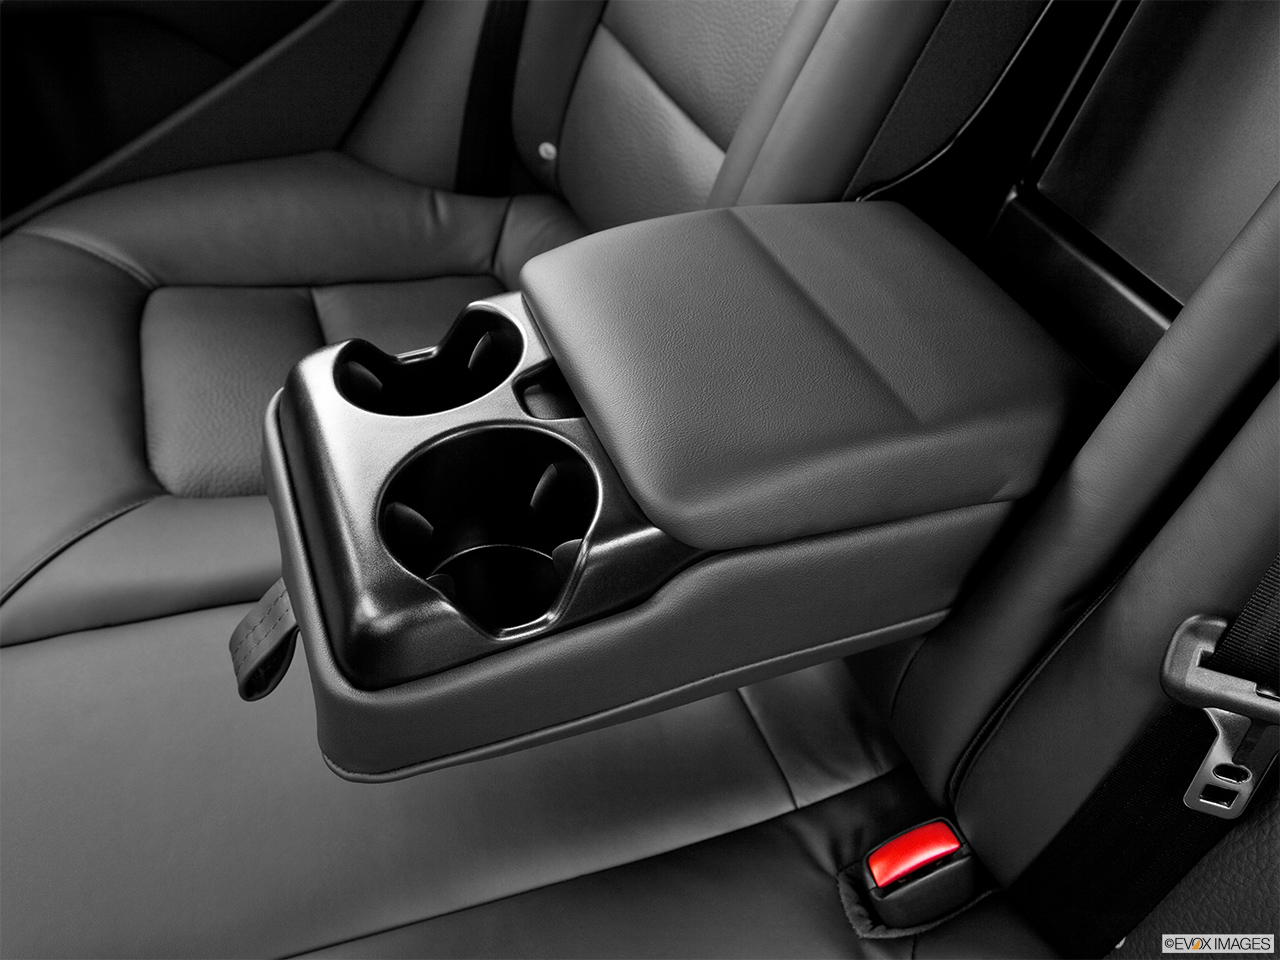 2013 Volvo S80 3.2 Platinum Rear center console with closed lid from driver's side looking down.